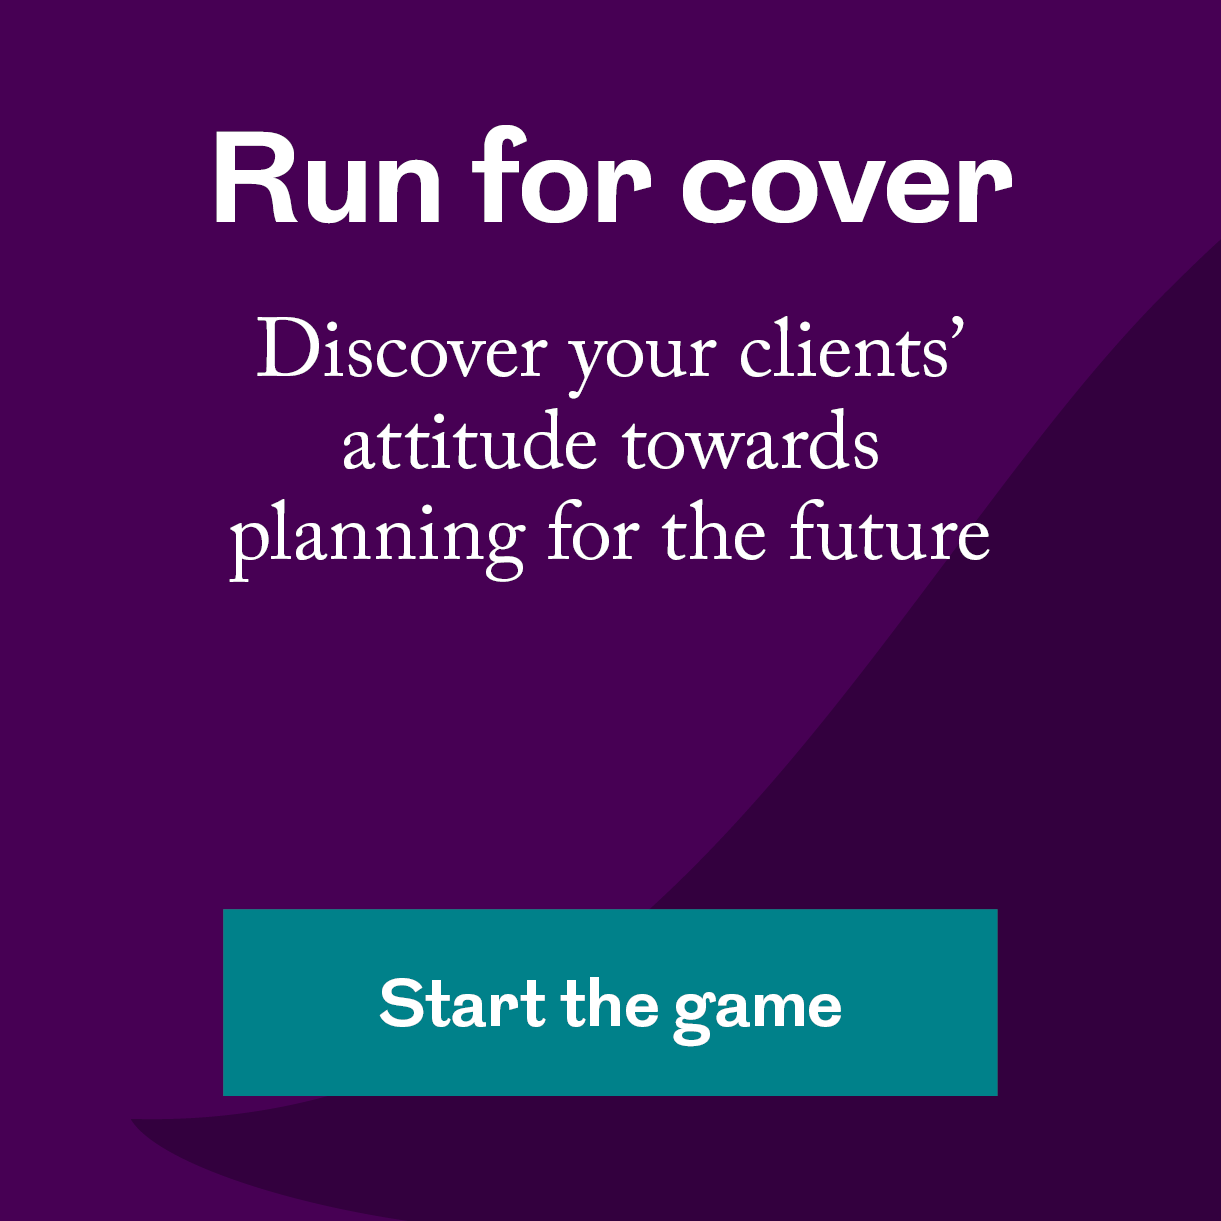 Play our Run for cover quiz